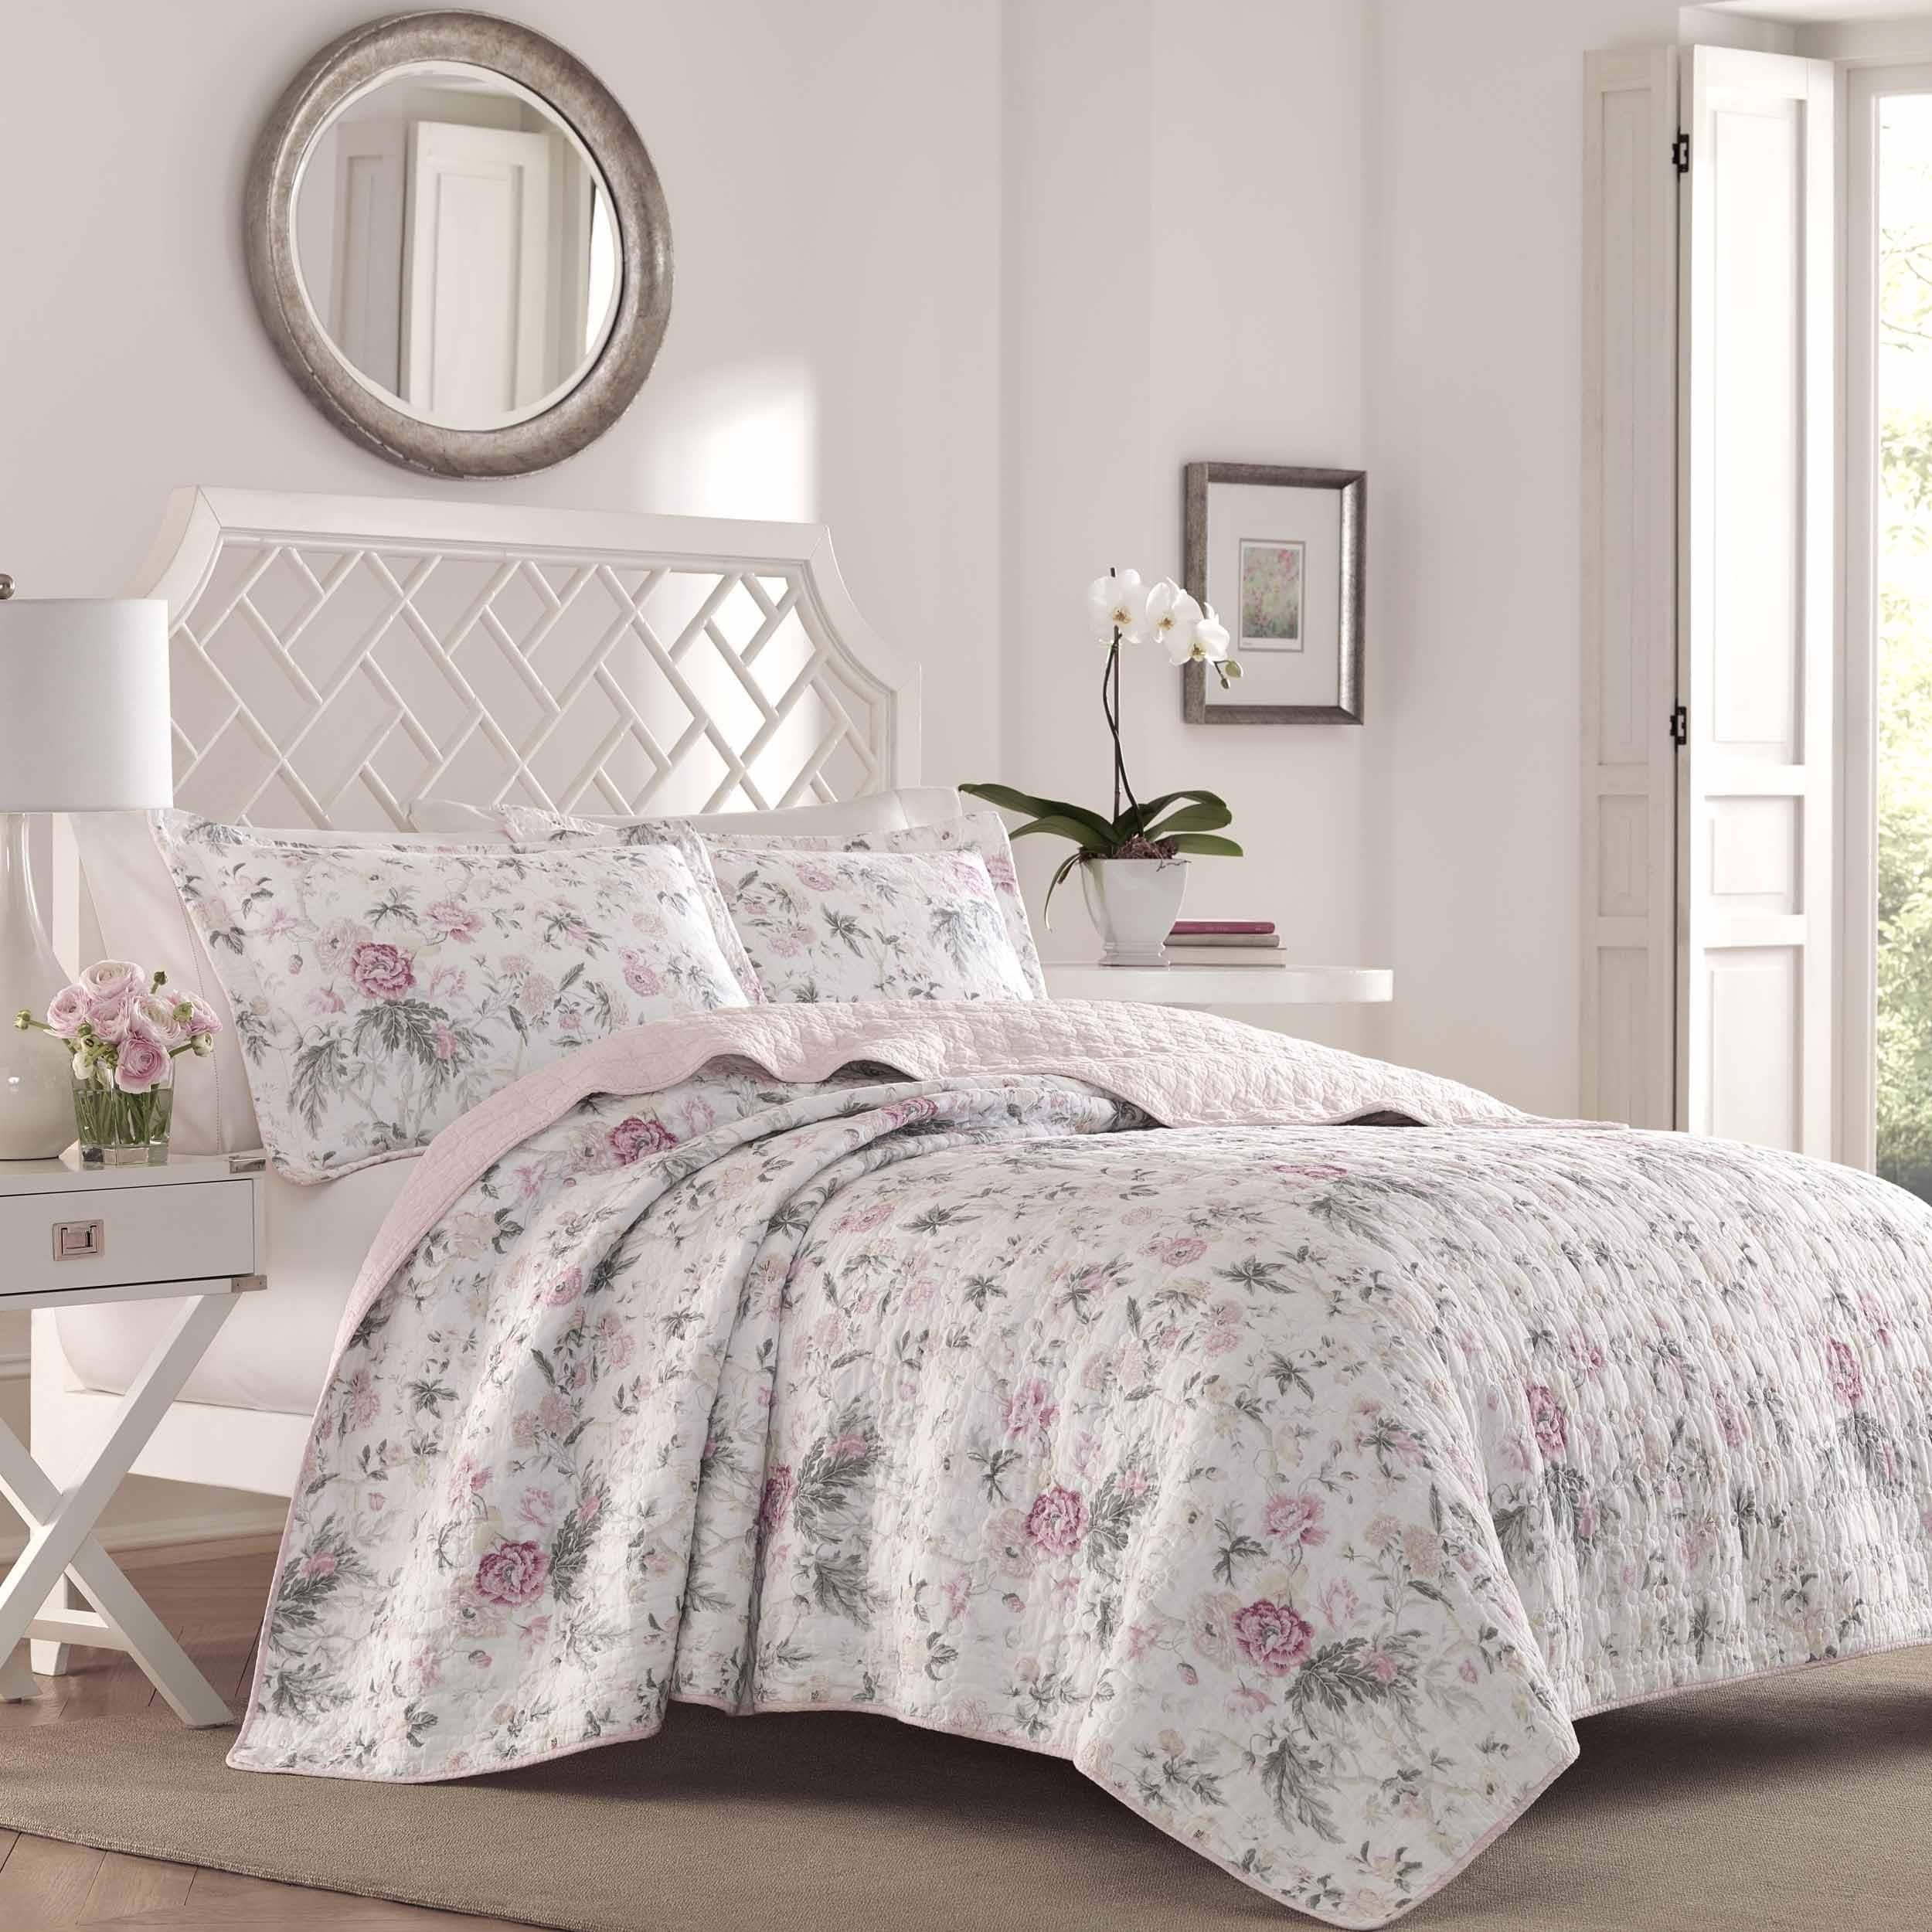 Laura Ashley Breezy Floral Quilt Set King Size Products Quilt